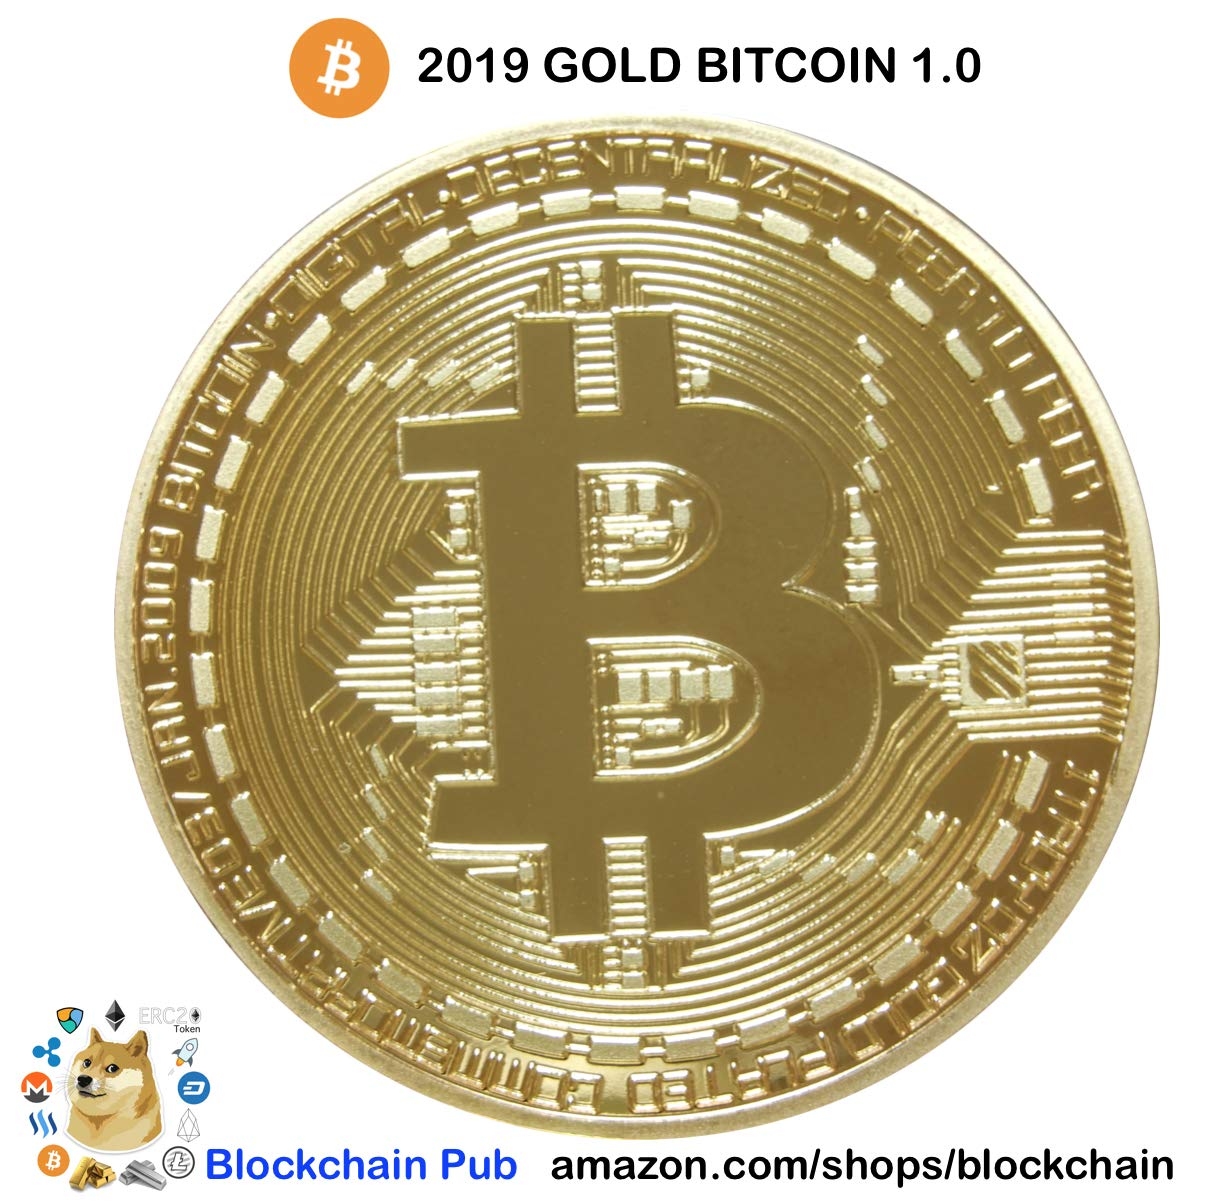 .999 Fine Gold Bitcoin Commemorative Round Collectors Coin - Bit Coin is Gold Plated Copper Physical Coin Karazan 8795630829